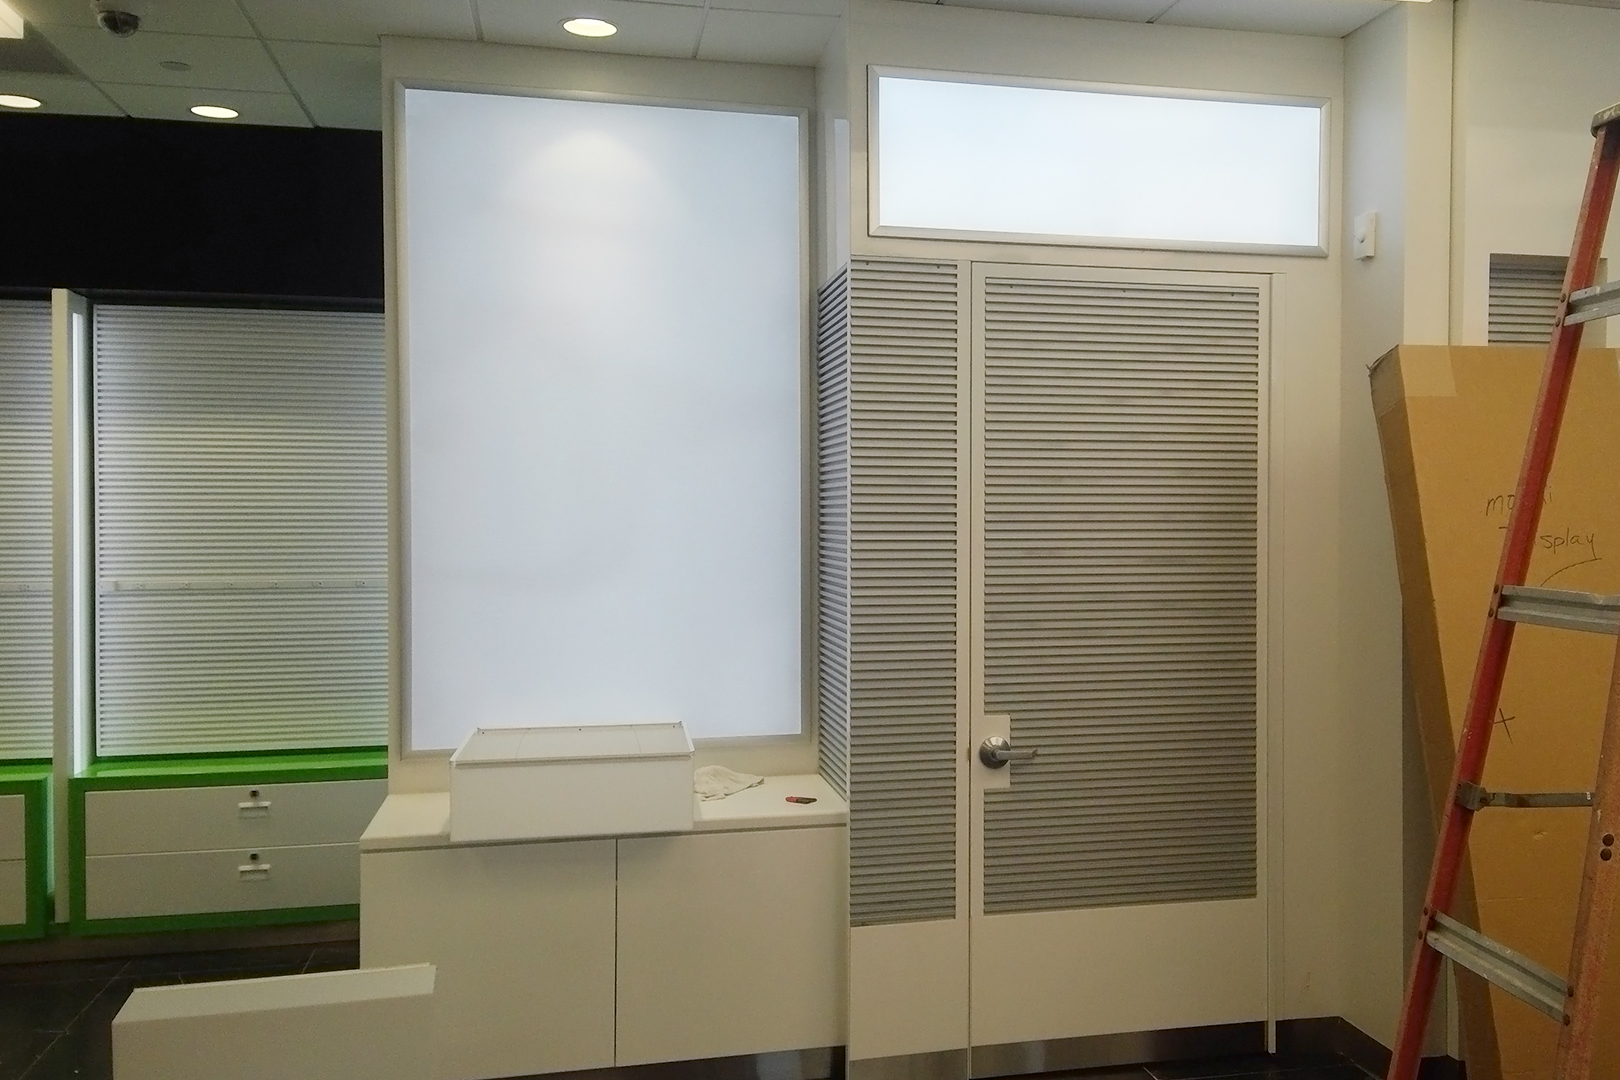 Tech on the go wall fixtures and utility closet.